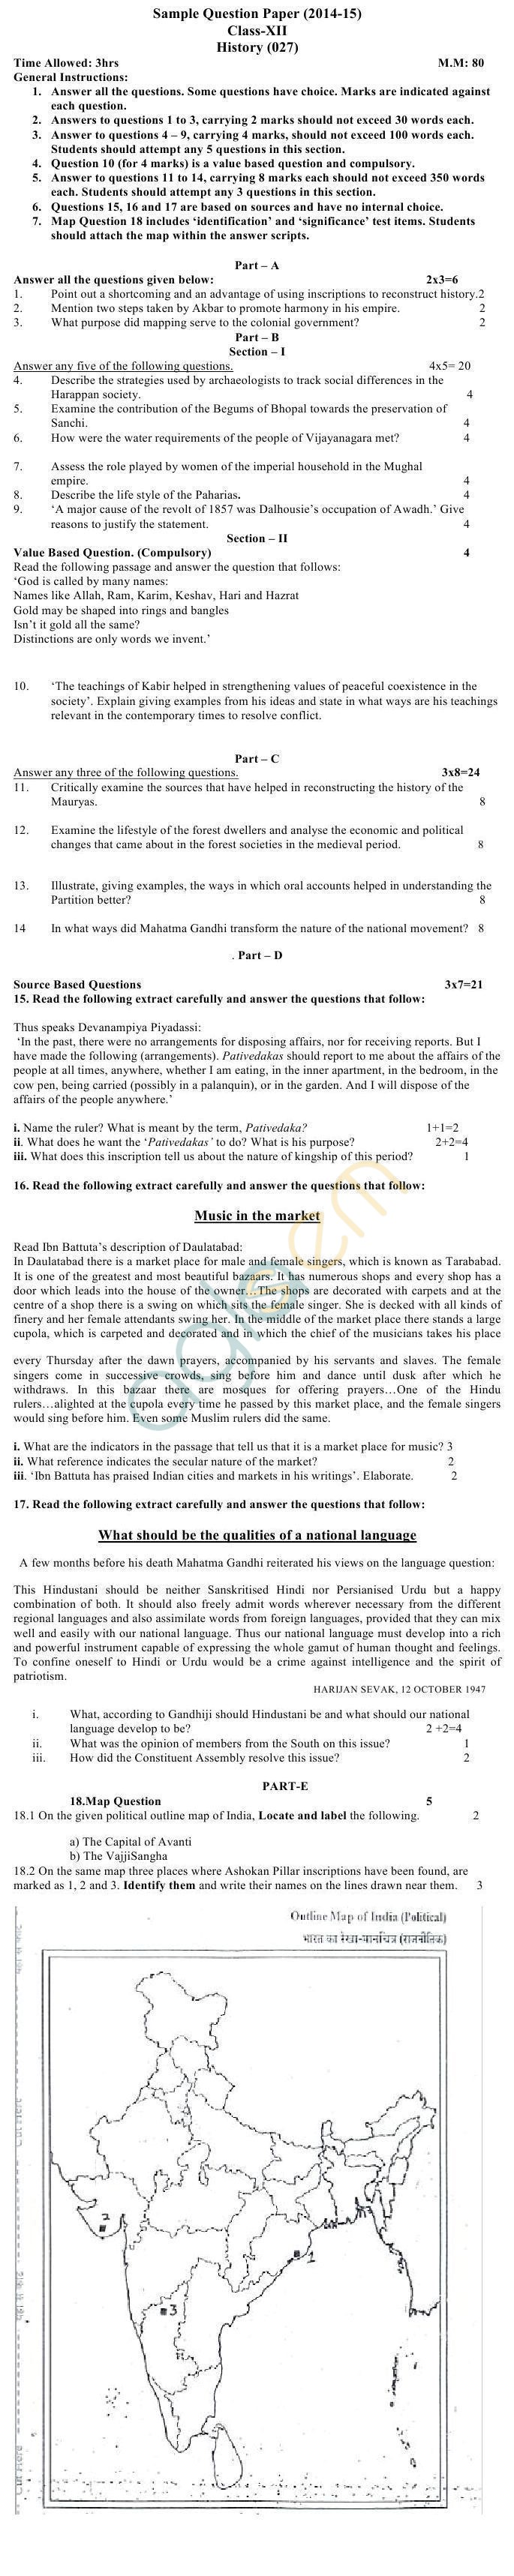 English extended essay exemplars rubric